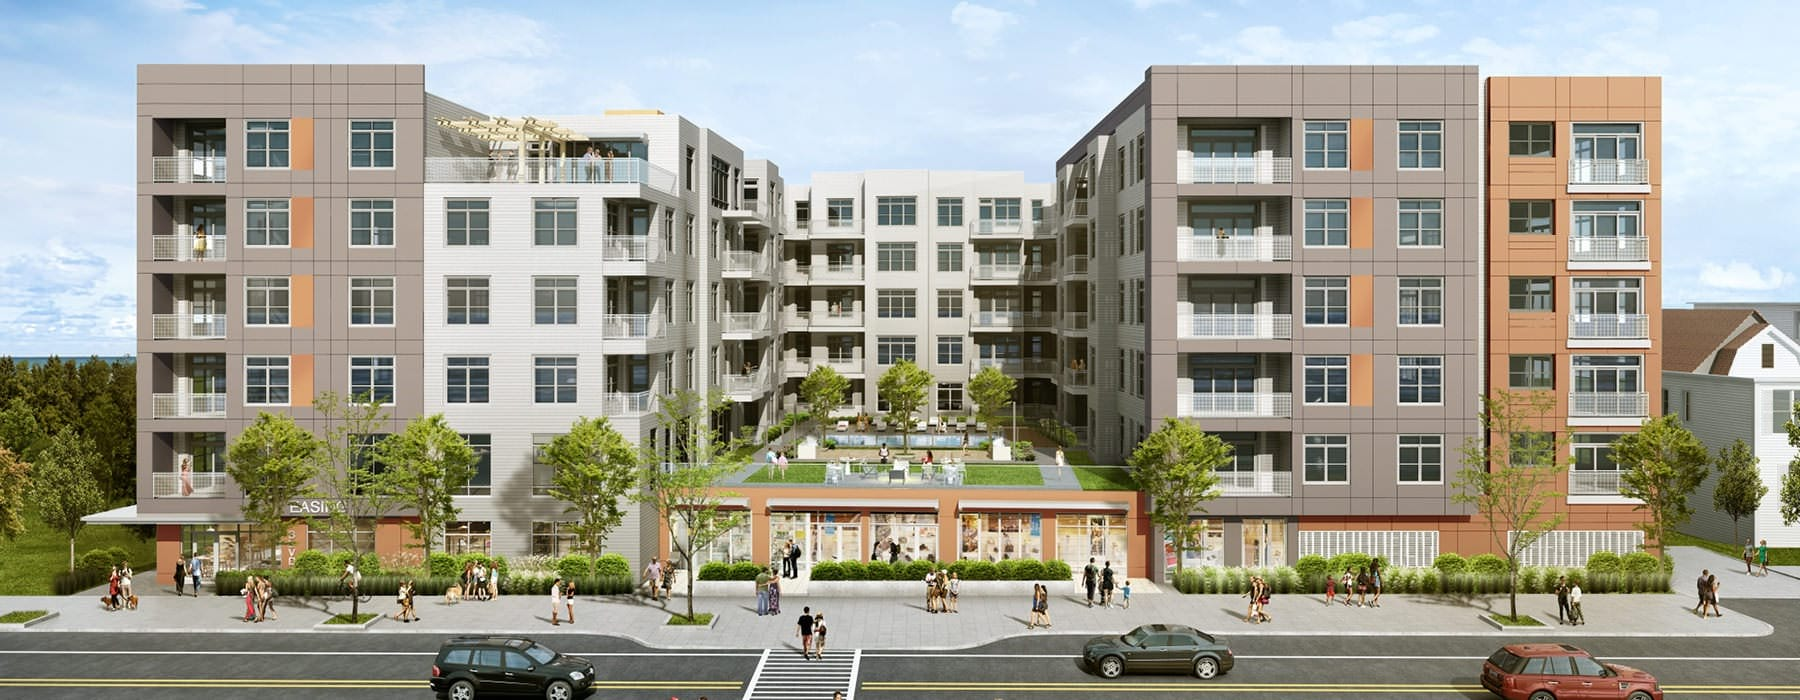 BLVD at Revere Beach exterior rendering with street and people walking along the sidewalk